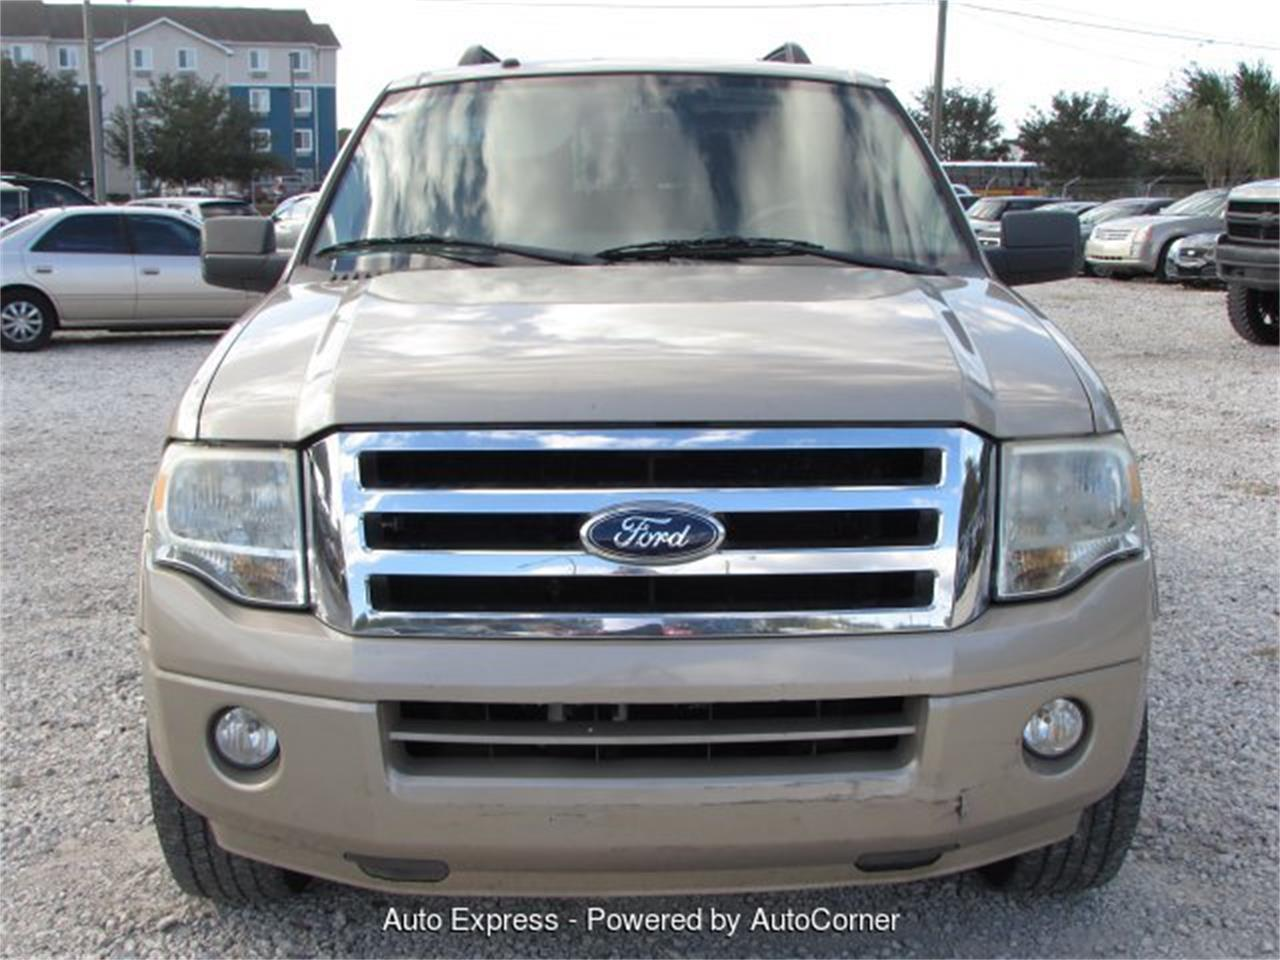 2008 Ford Expedition for sale in Orlando, FL – photo 2